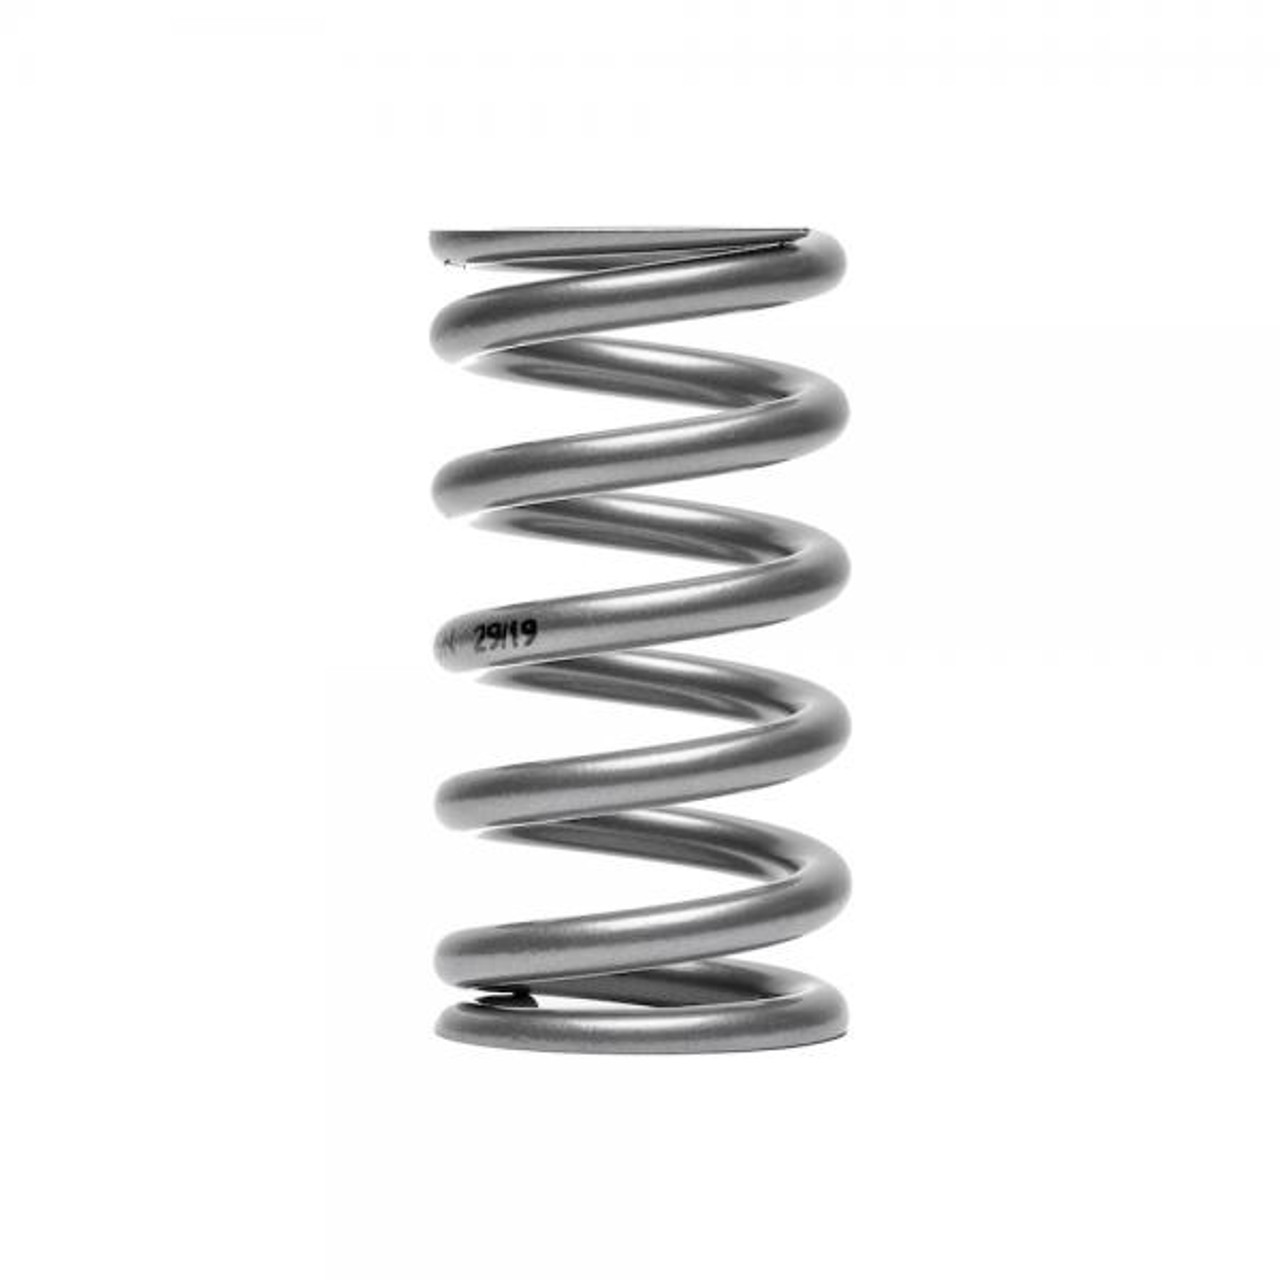 Spring for Ohlins rear shock absorber